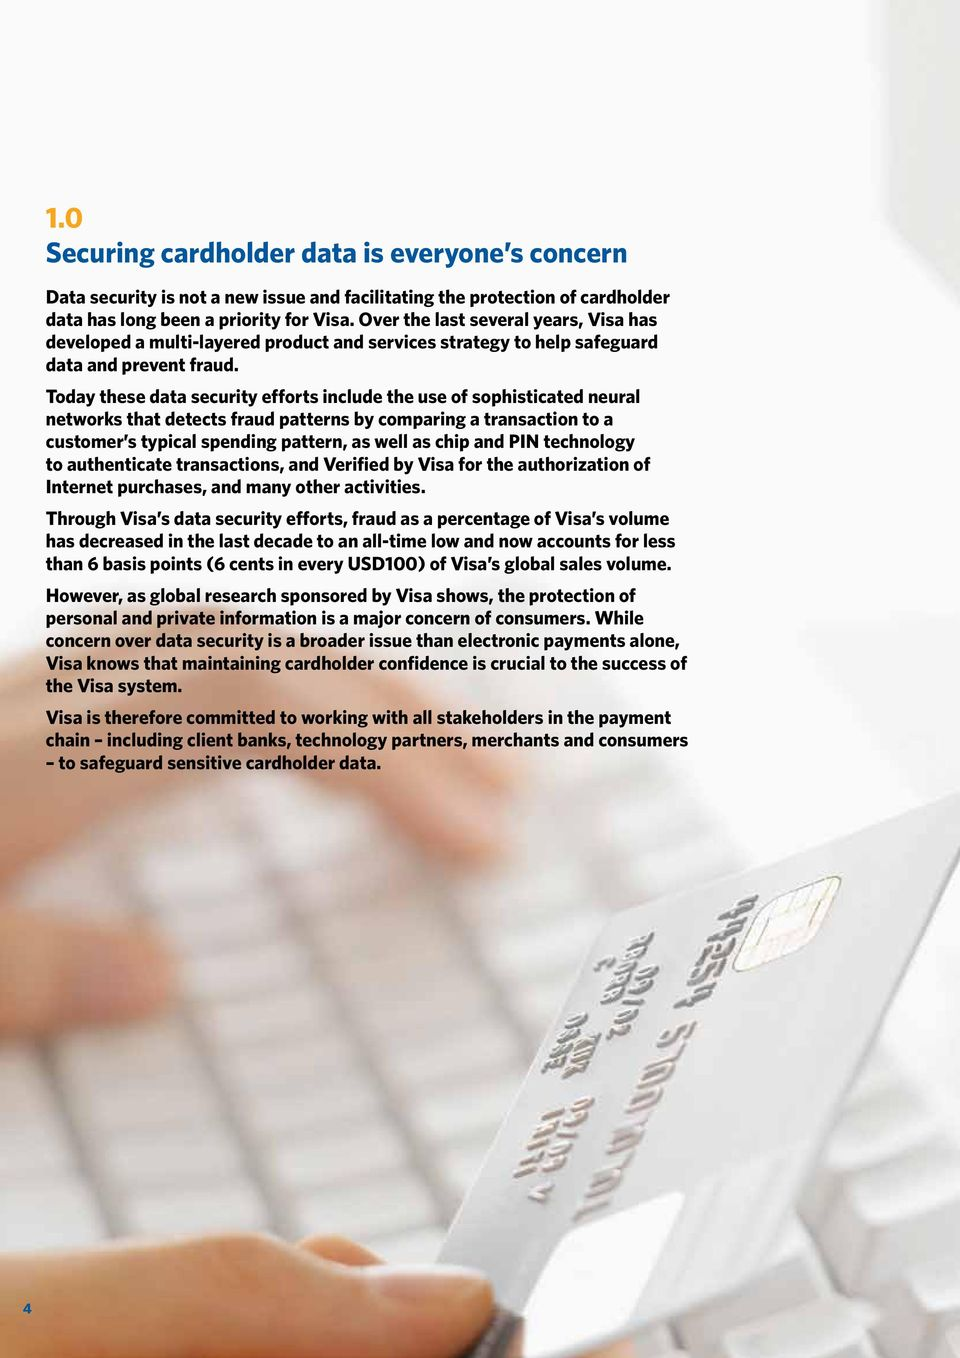 Today these data security efforts include the use of sophisticated neural networks that detects fraud patterns by comparing a transaction to a customer s typical spending pattern, as well as chip and